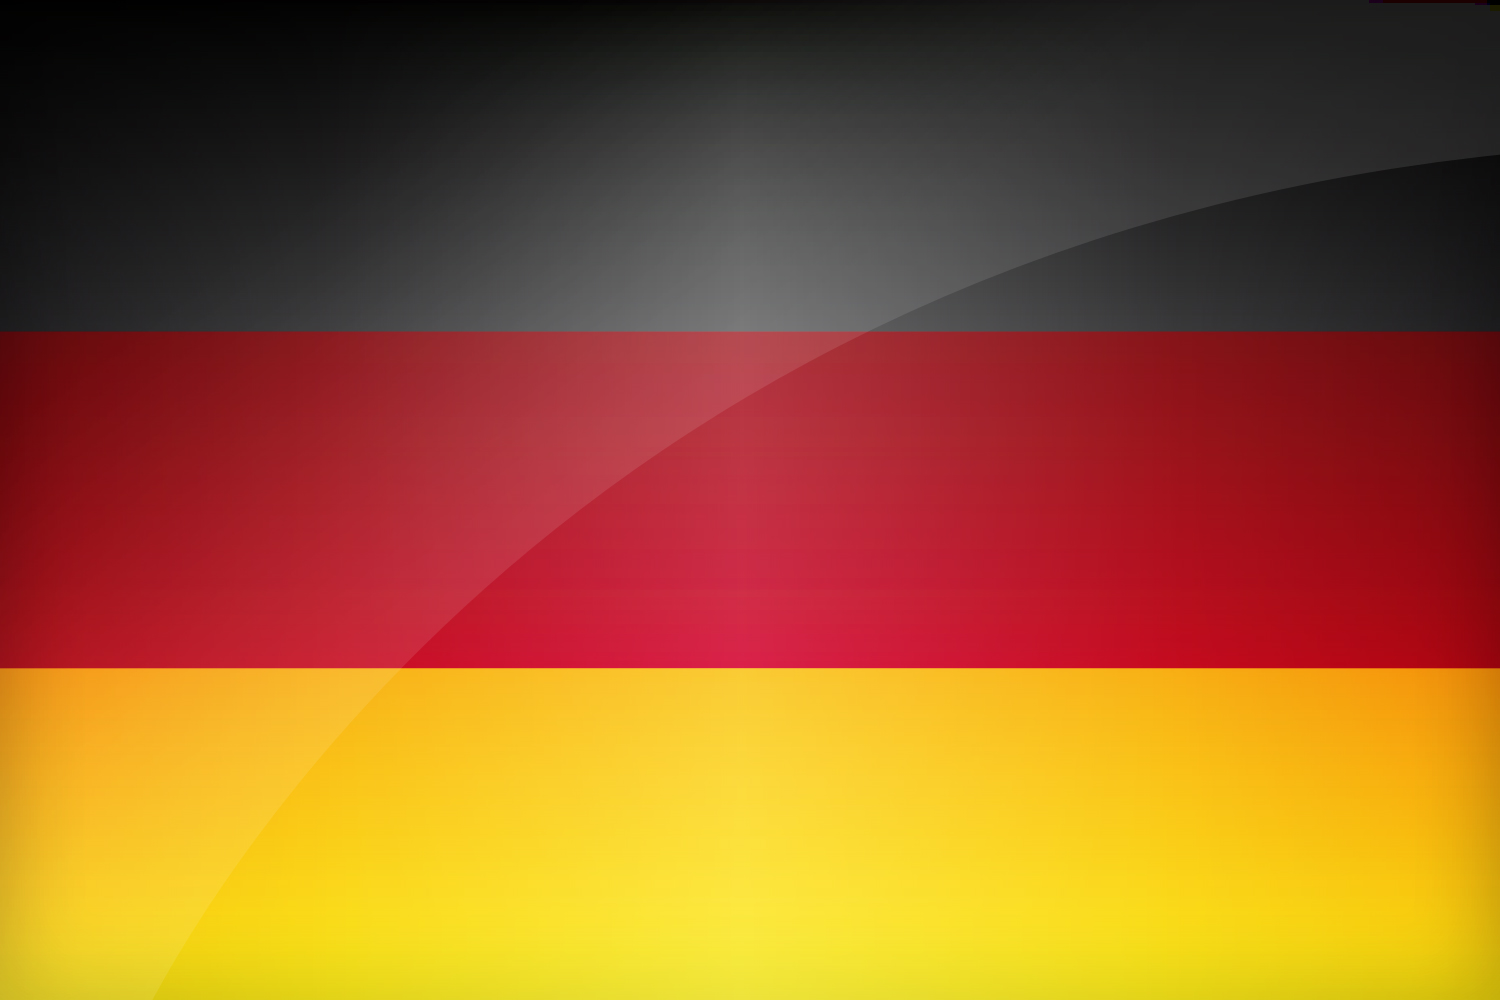 http://www.all-flags-world.com/country-flag/Germany/flag-germany-XL.jpg?910